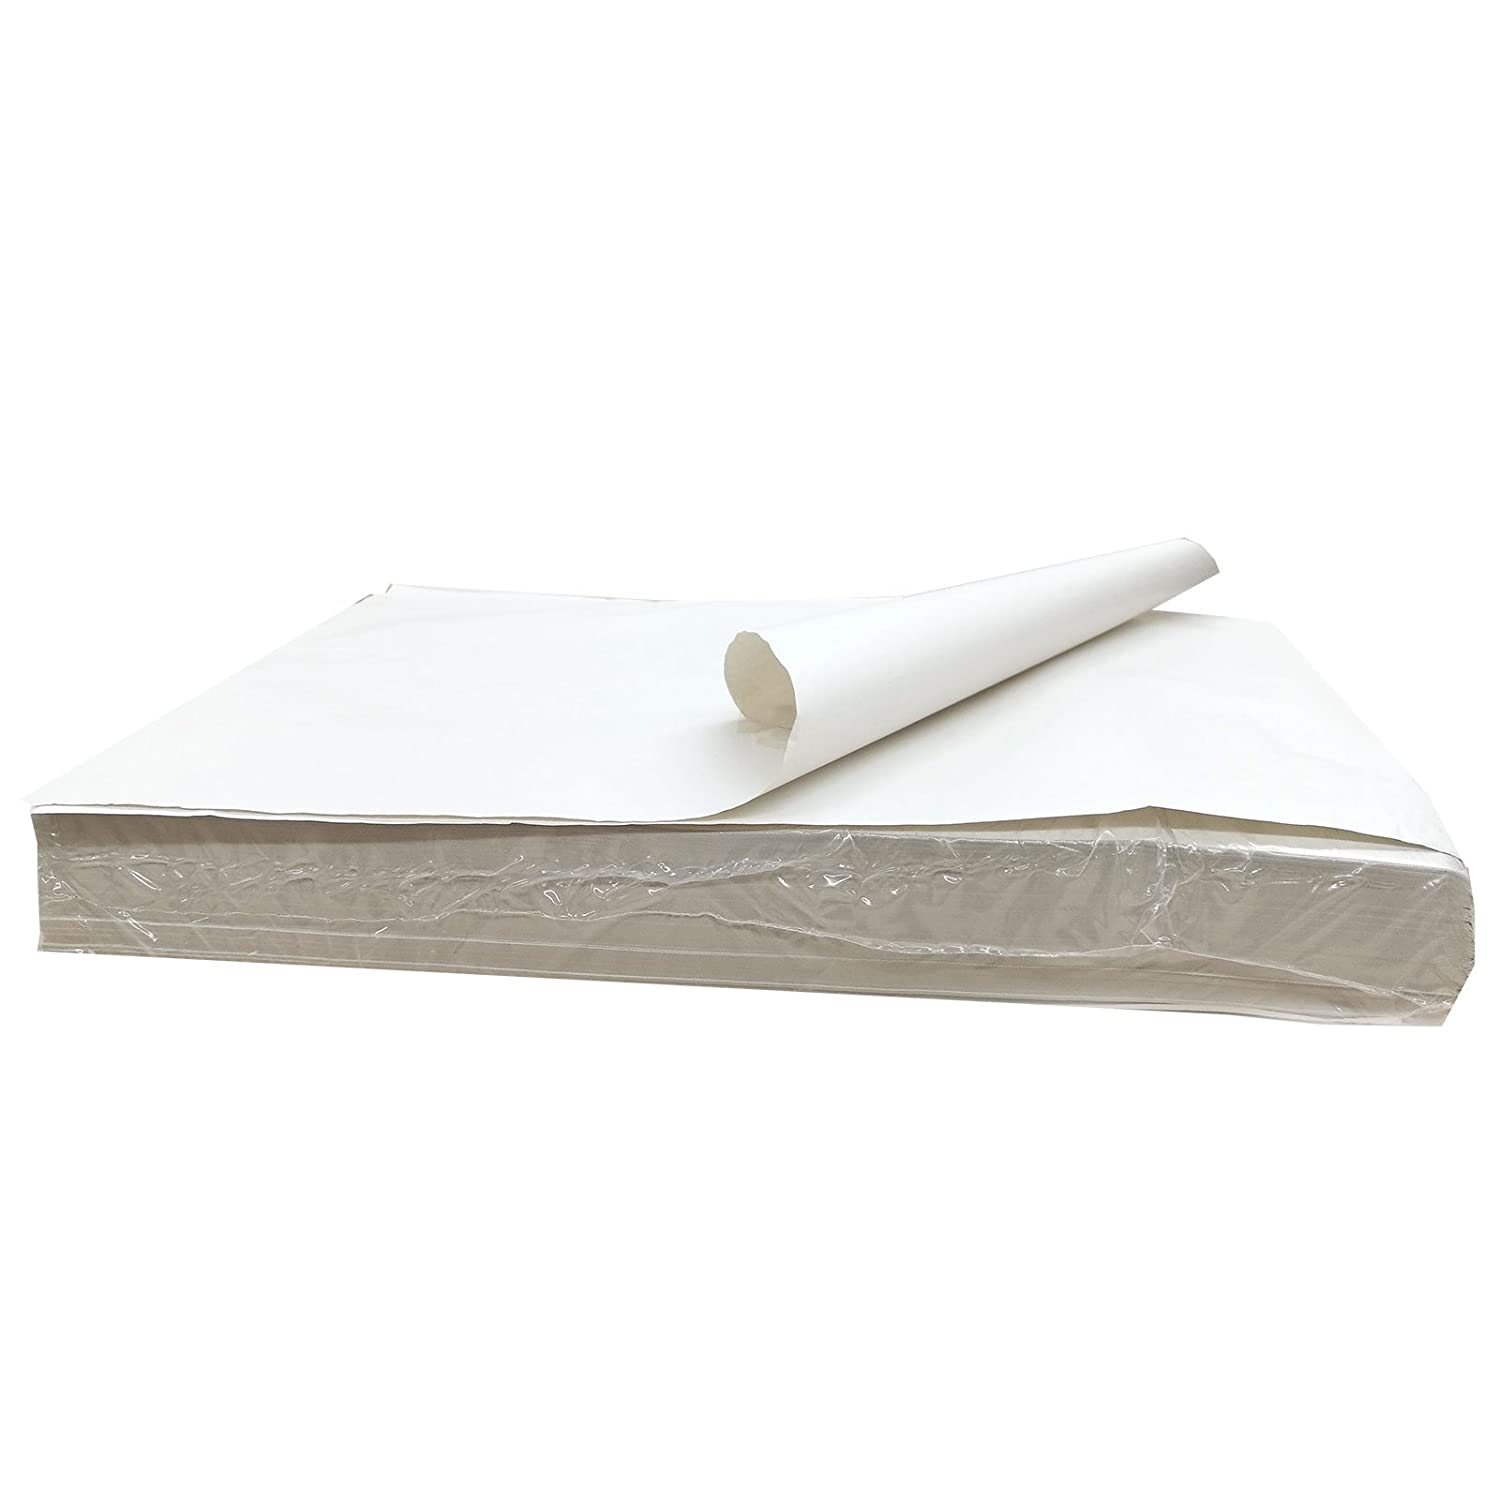 1500 Sheets Of WHITE PACKING PAPER Newspaper Offcuts Chip Shop Paper